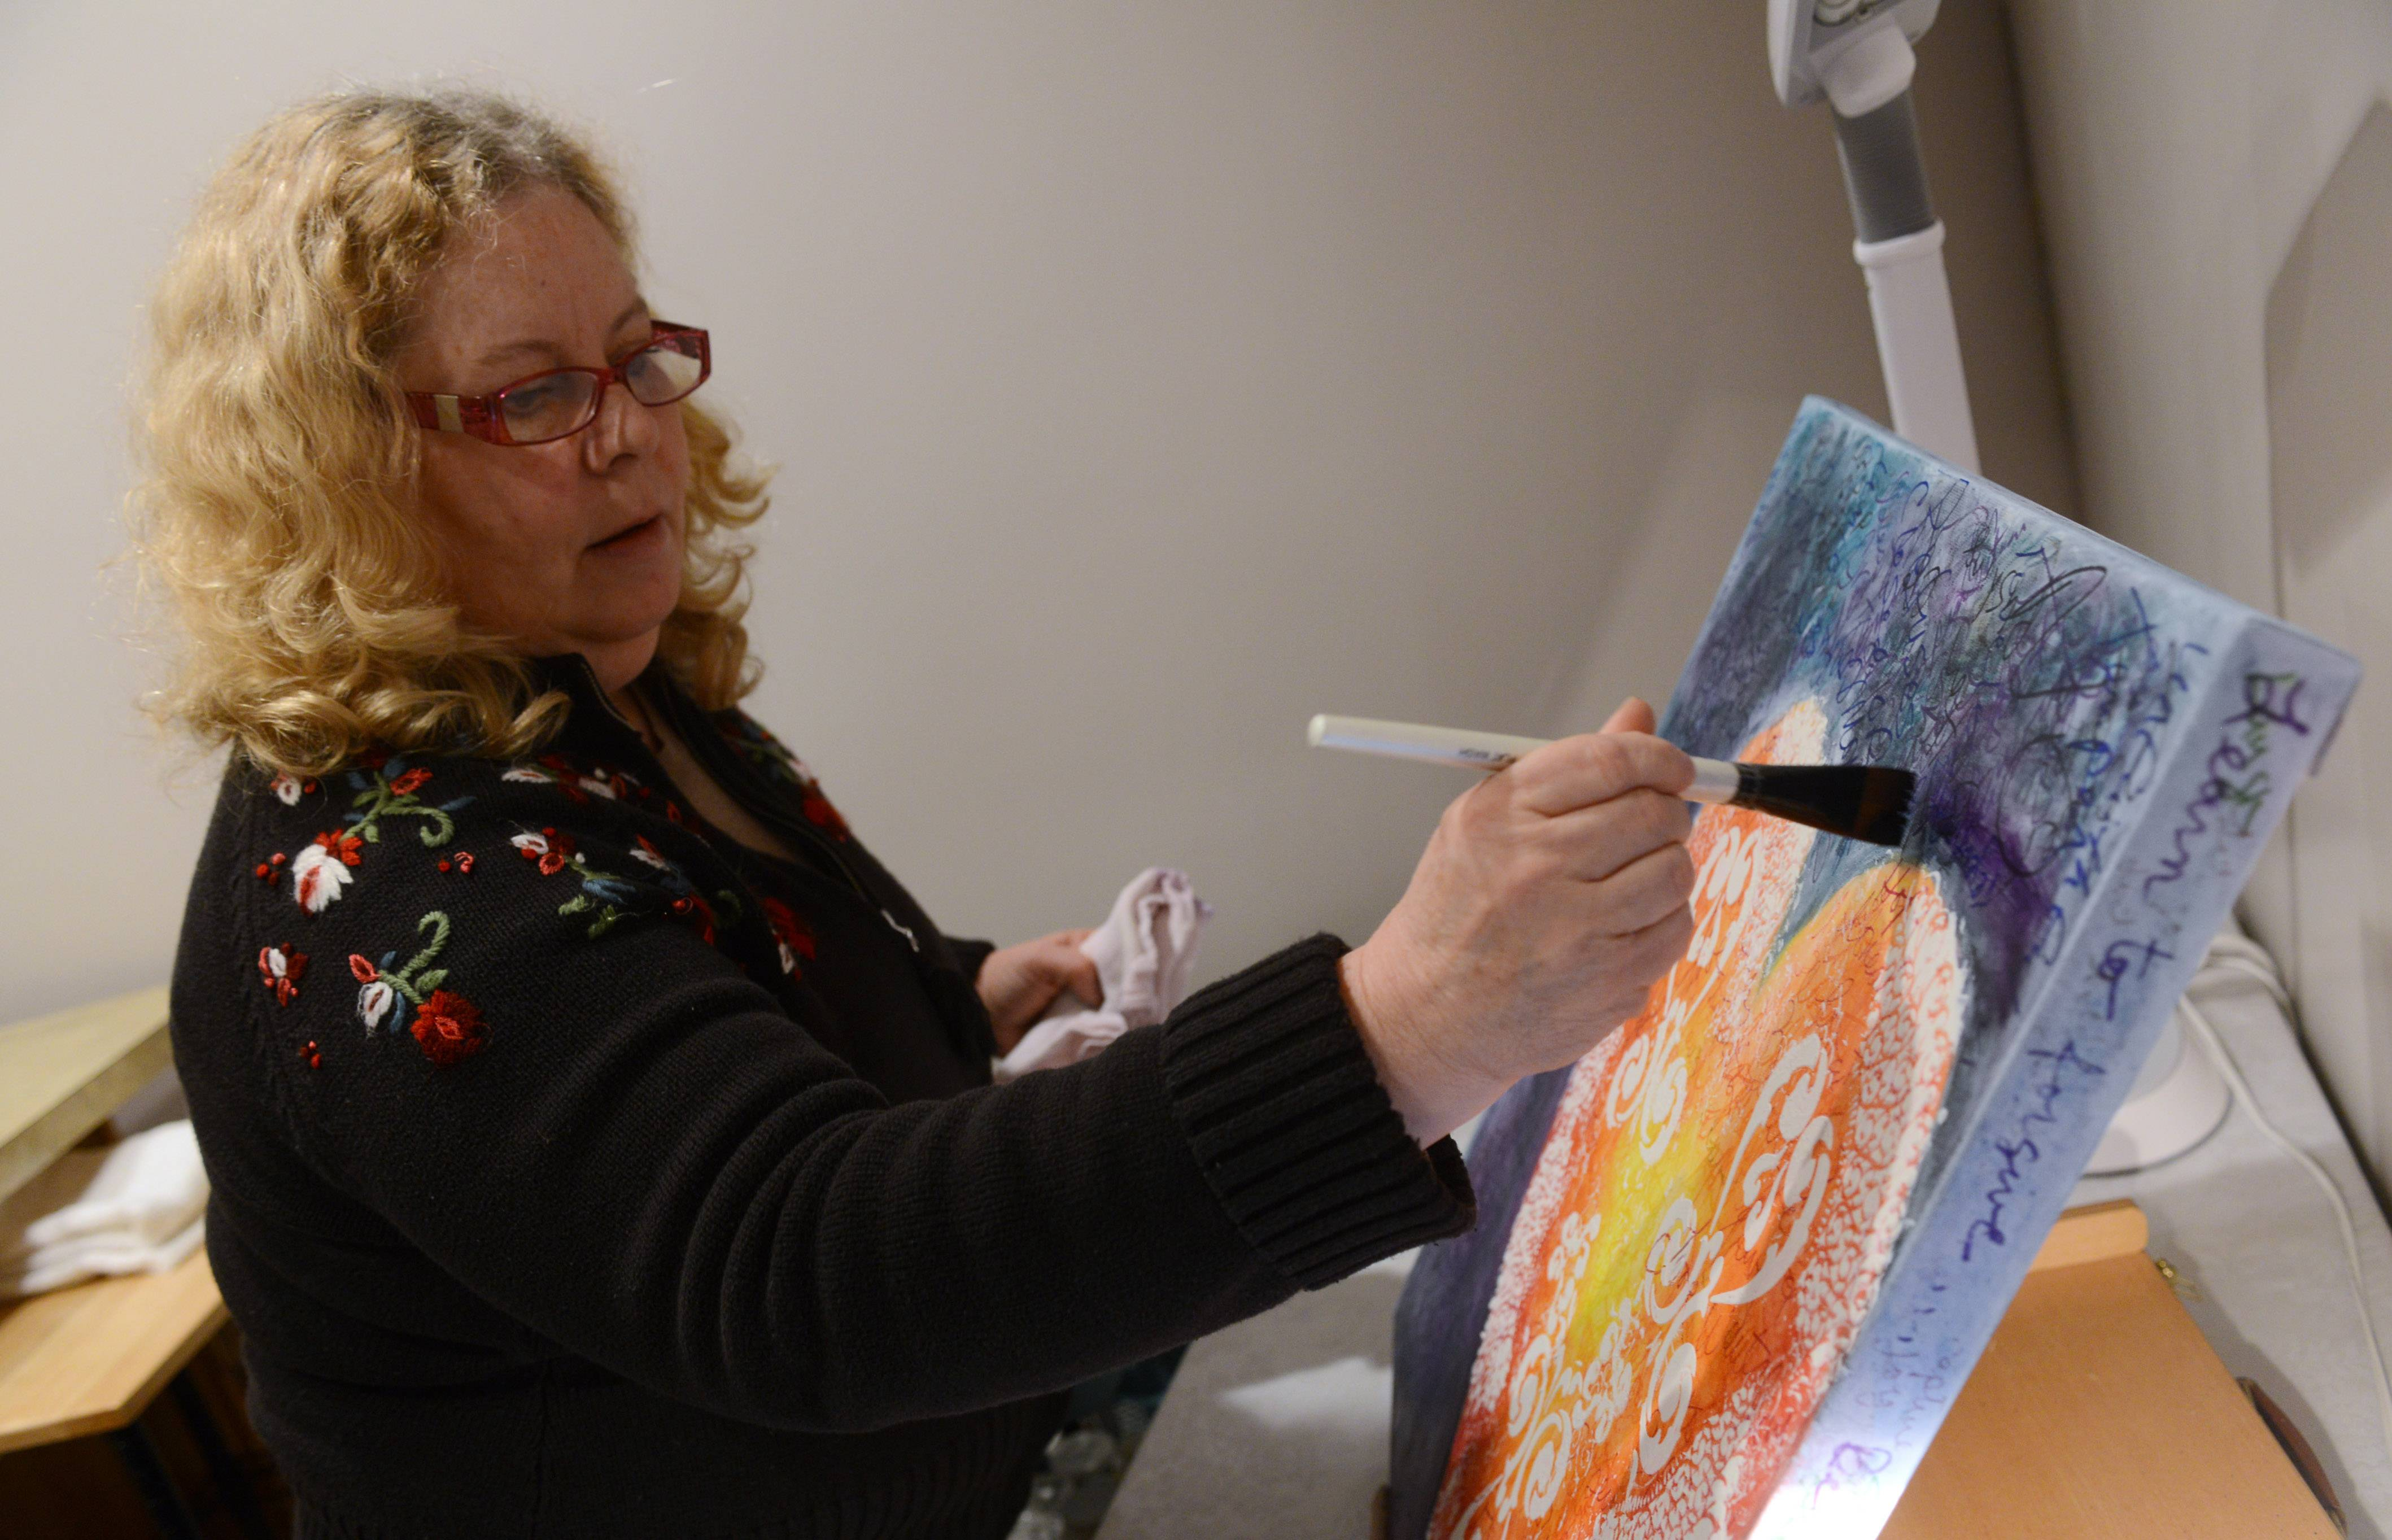 Linda Kay works on a painting in a studio she shares with another artist.